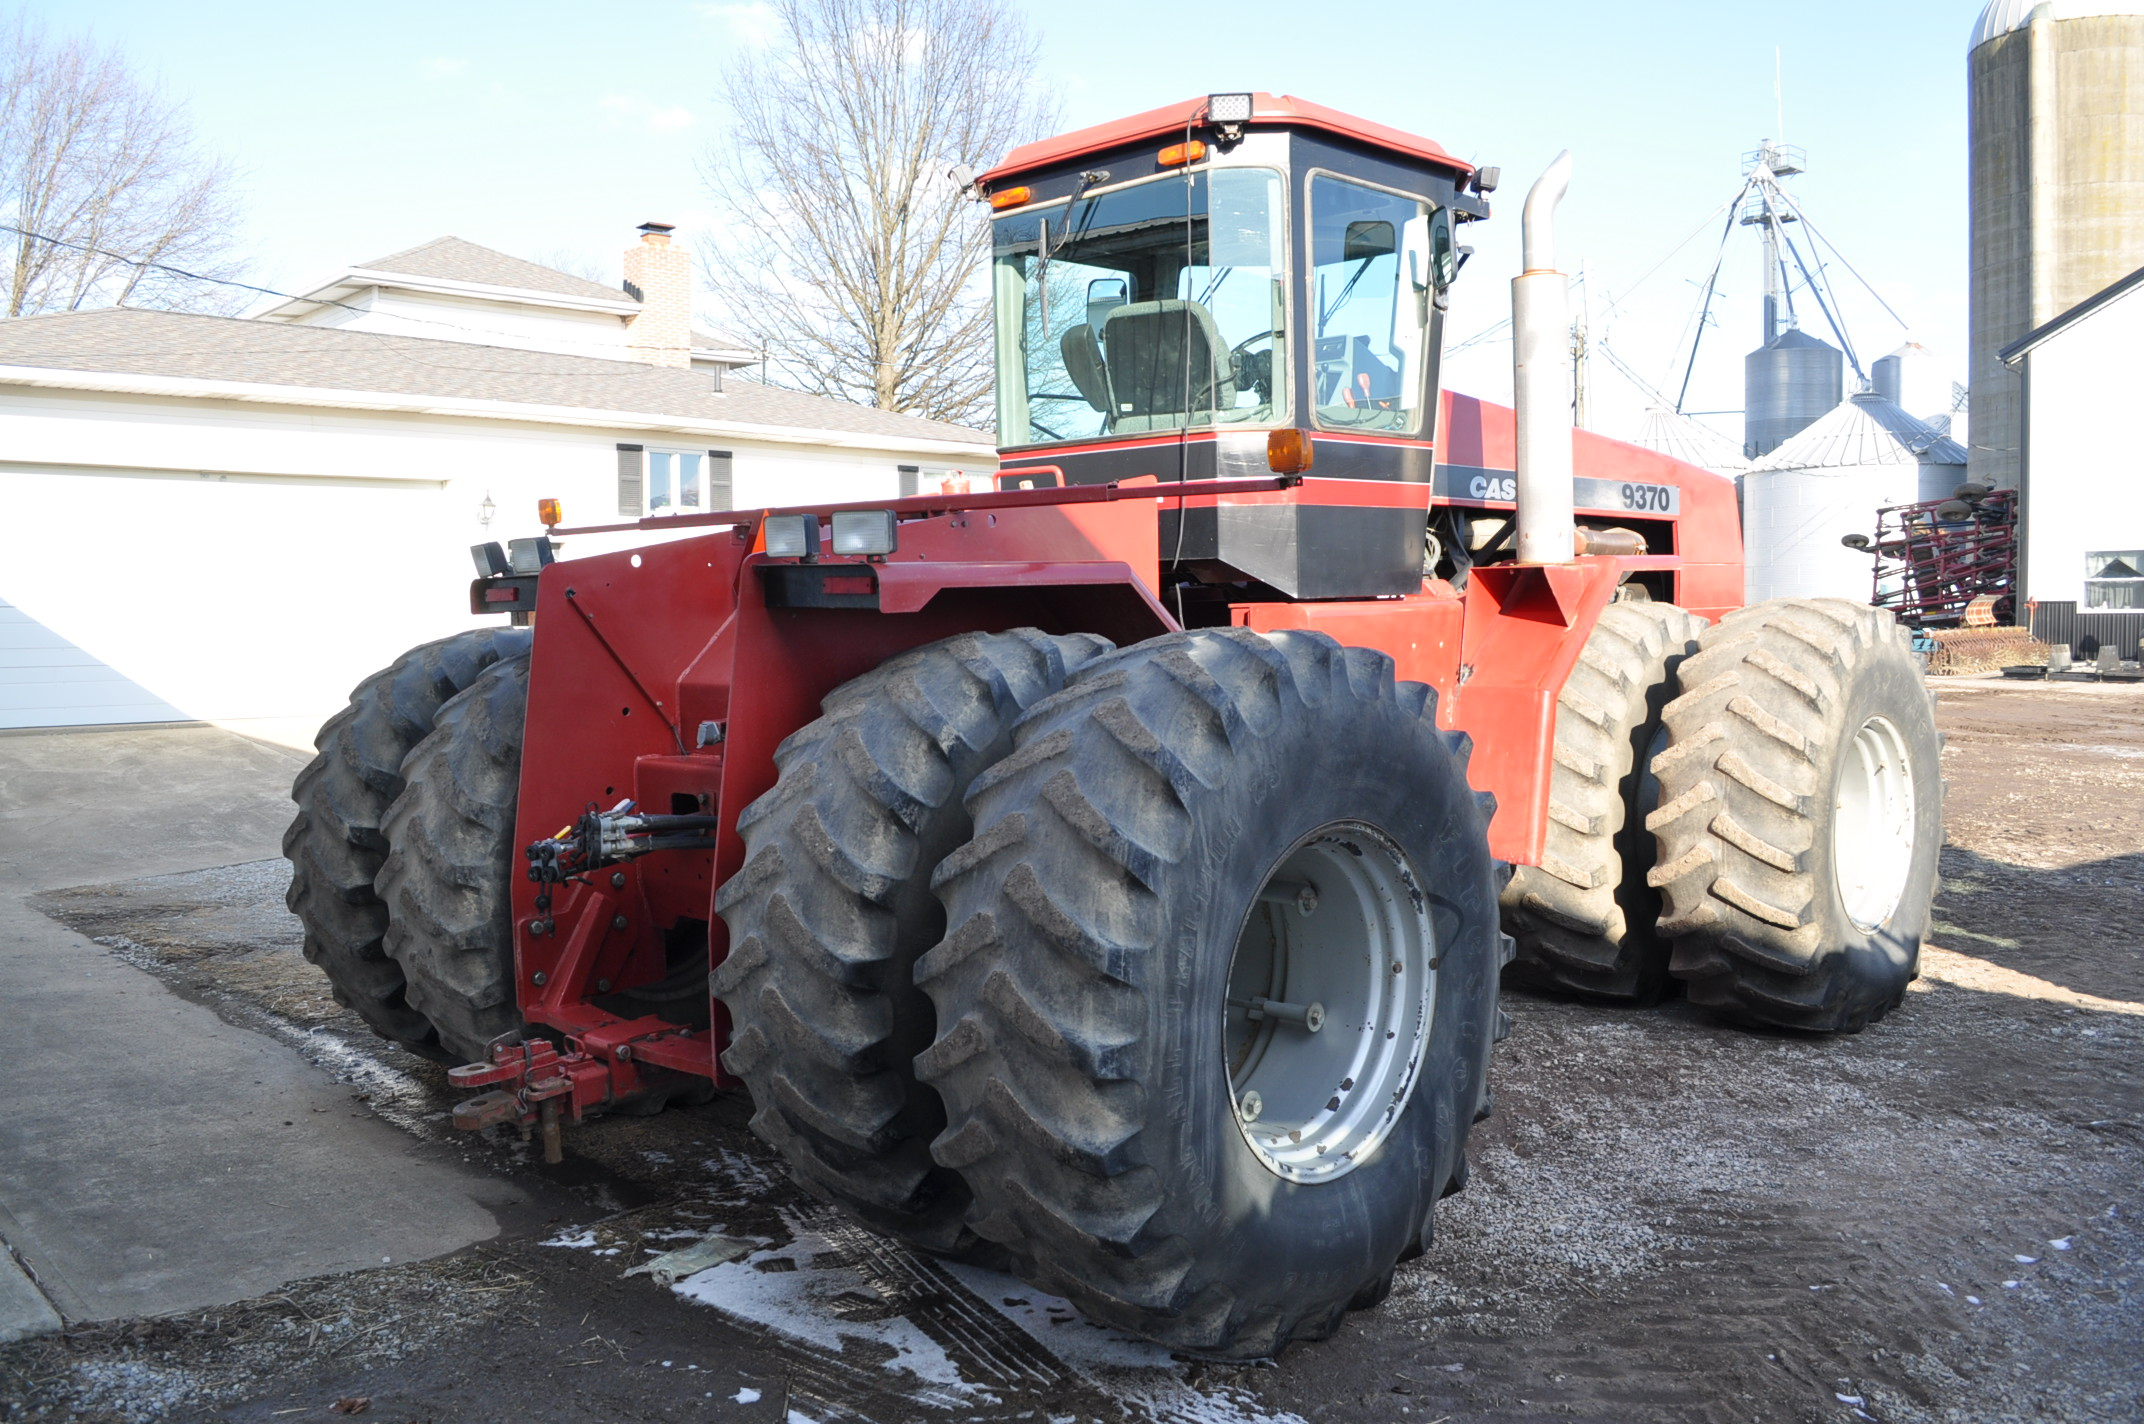 Case IH 9370 4WD tractor, 24.5R32 duals, power shift, skip shift, 4 hyd remotes, 4622 hrs, front - Image 4 of 23